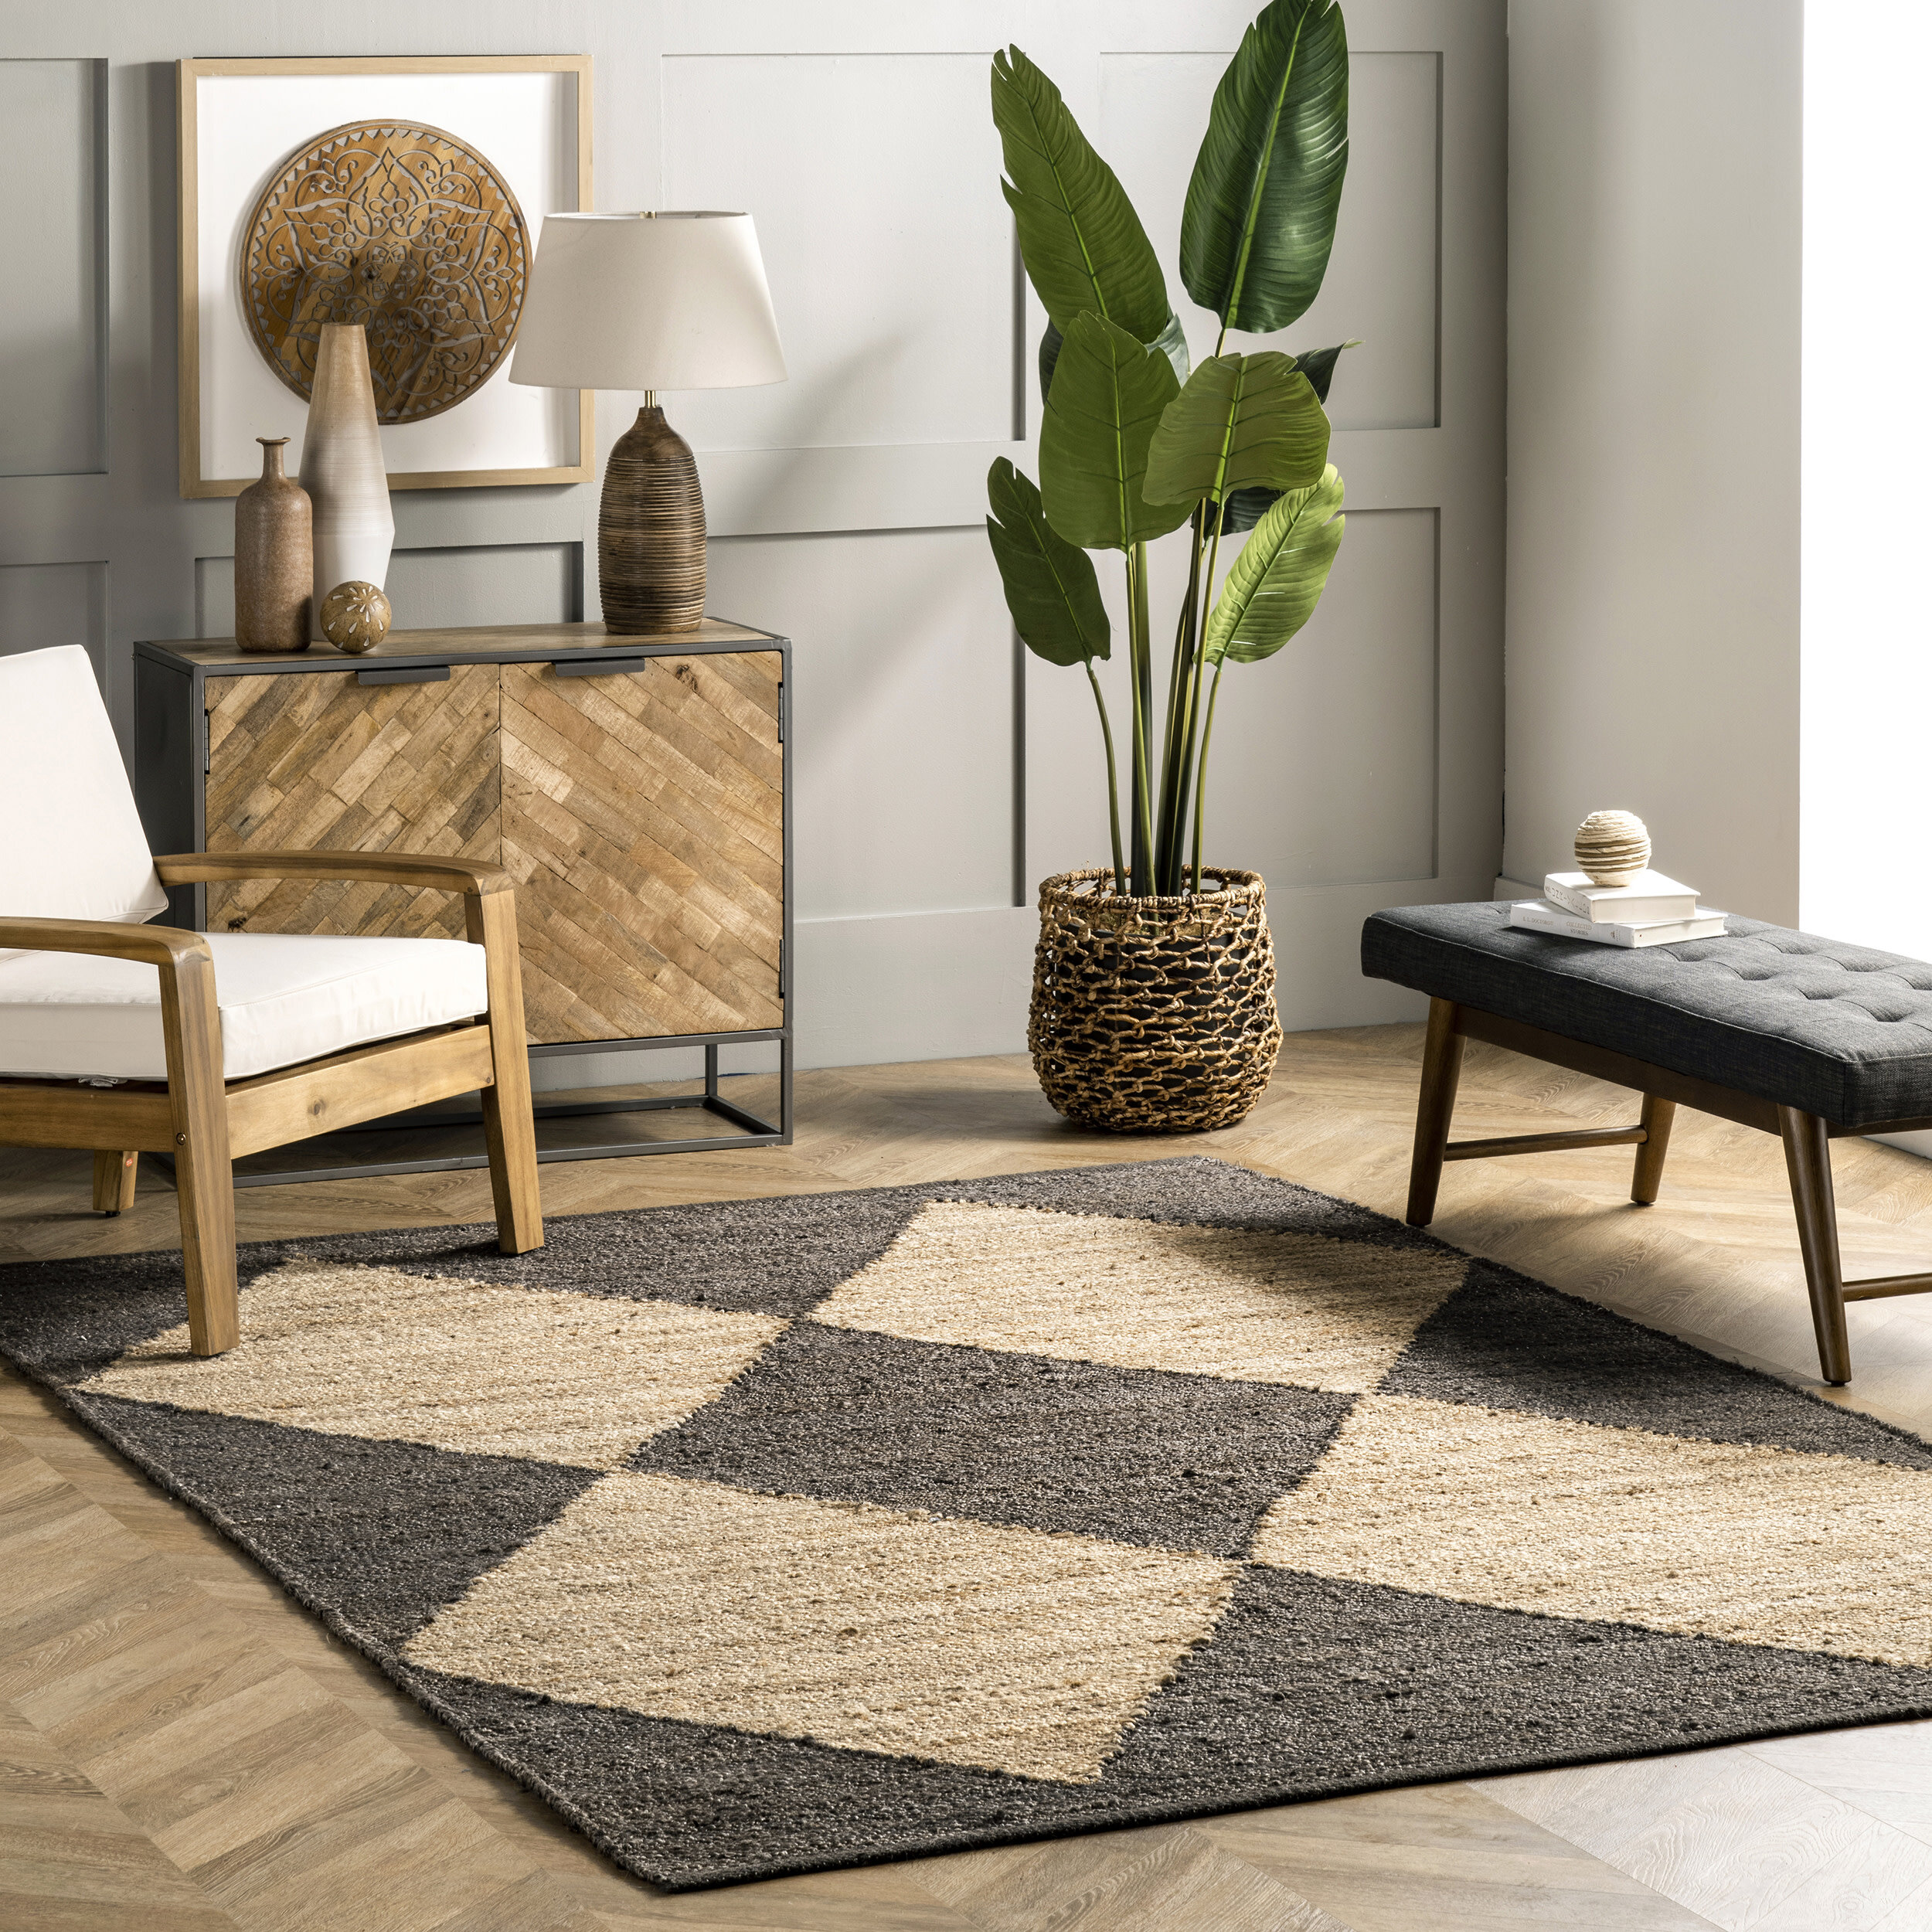 Cotton Hooked Area Rugs You Ll Love In 2021 Wayfair